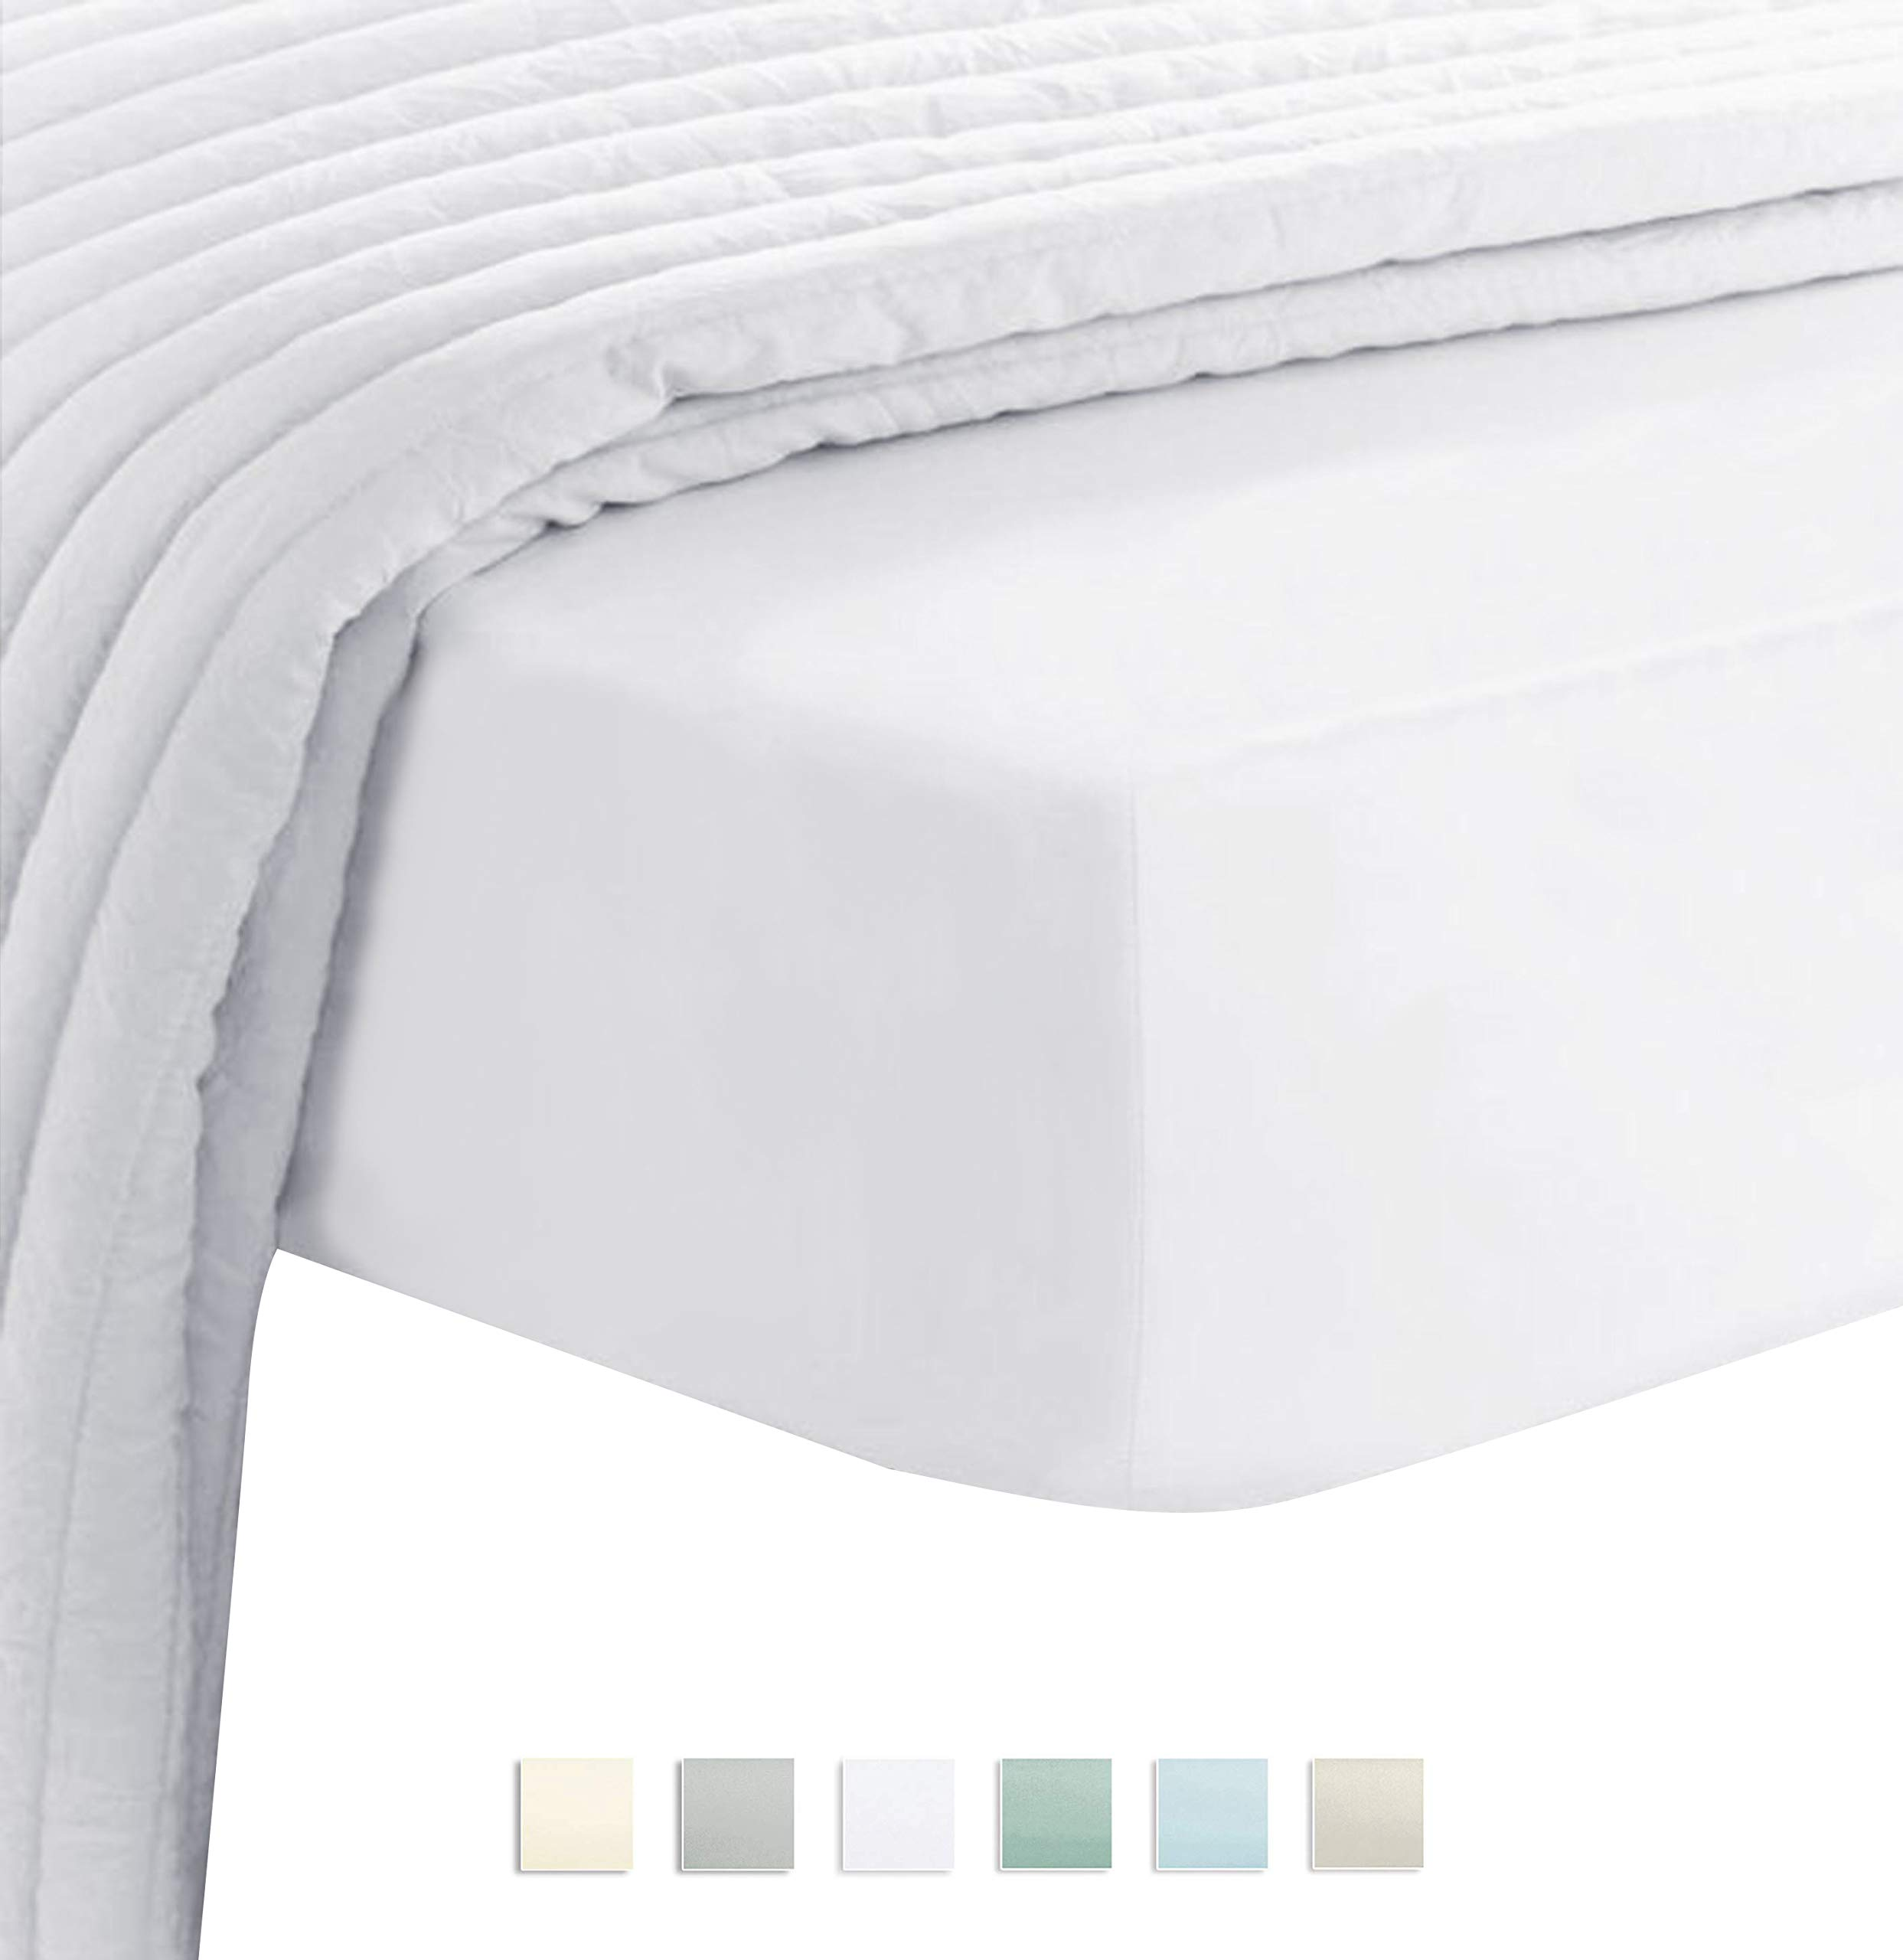 Premium 400 Thread Count Cotton Queen Fitted Sheets White 1pc, 100% Long Staple Cotton Fitted Sheet, Soft Sateen Bed Fitted Sheets fit Upto 16'' Deep Pocket (White 100% Cotton Deep Fitted Sheet Queen)